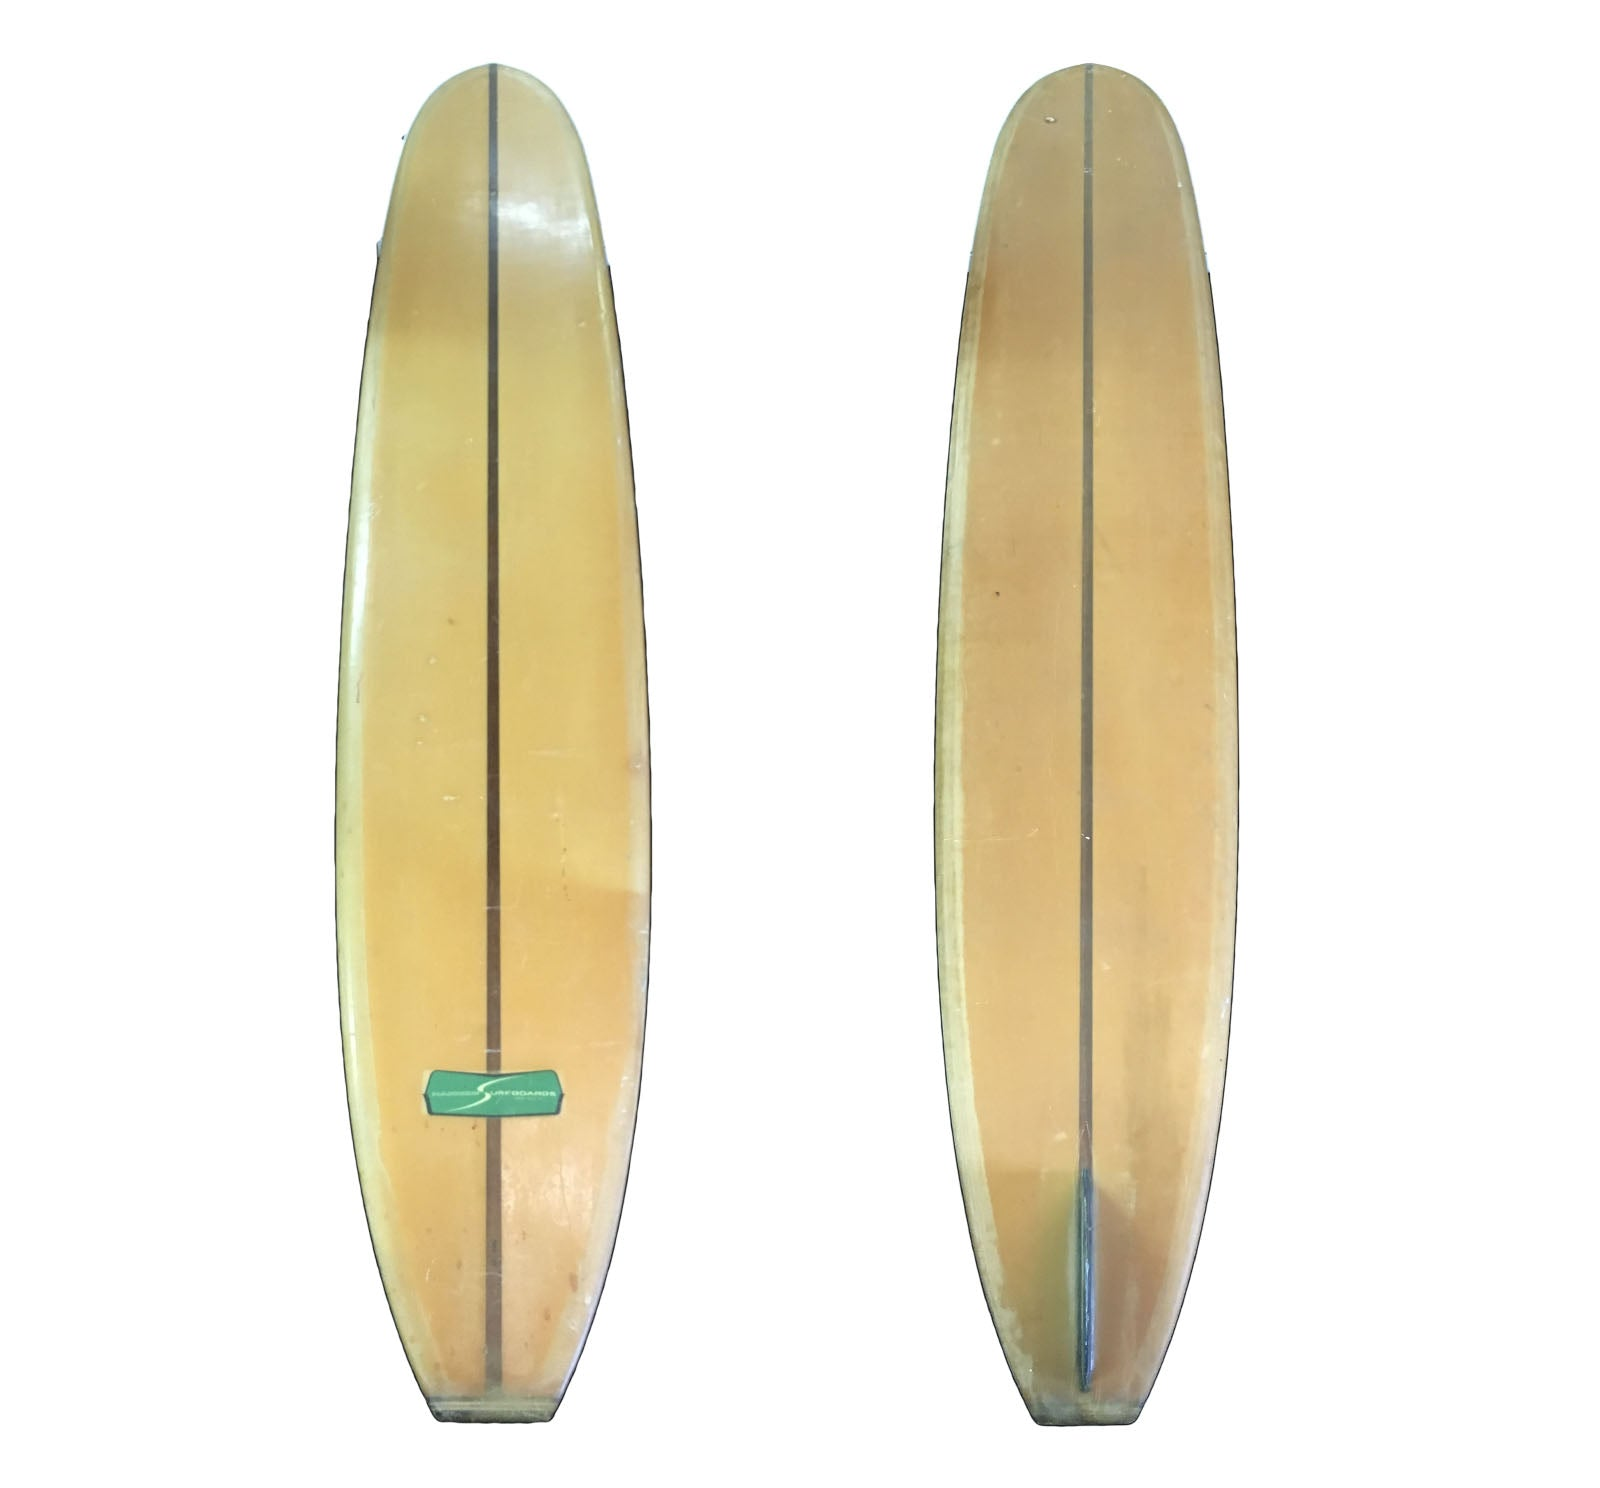 Hannon 9'8 Used Collector Surfboard